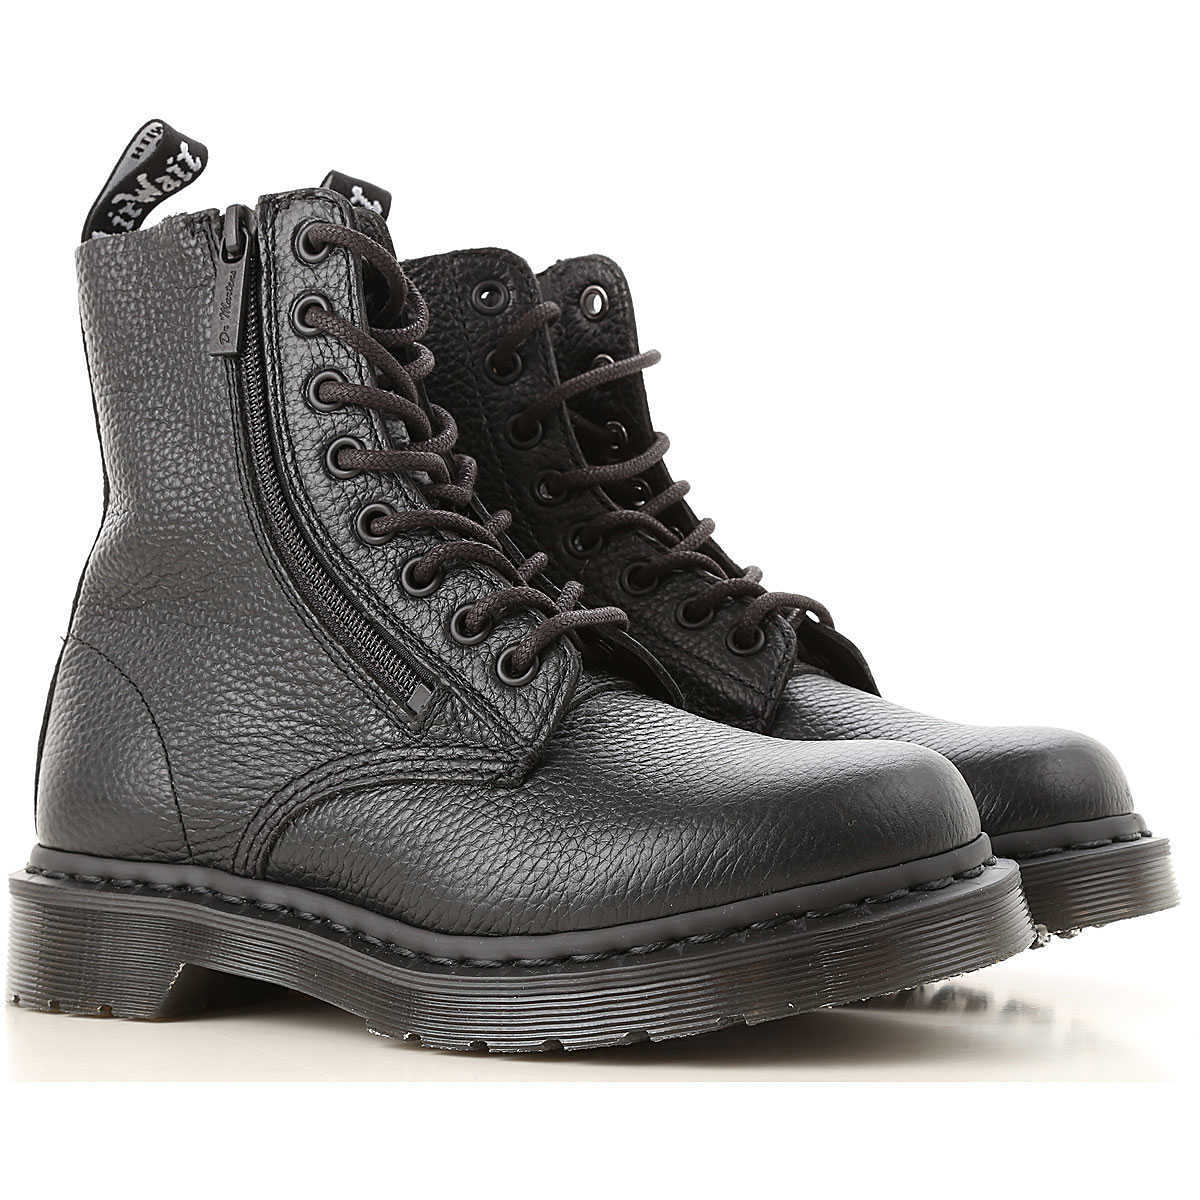 Dr. Martens Boots for Women Booties On Sale DK - GOOFASH - Womens BOOTS